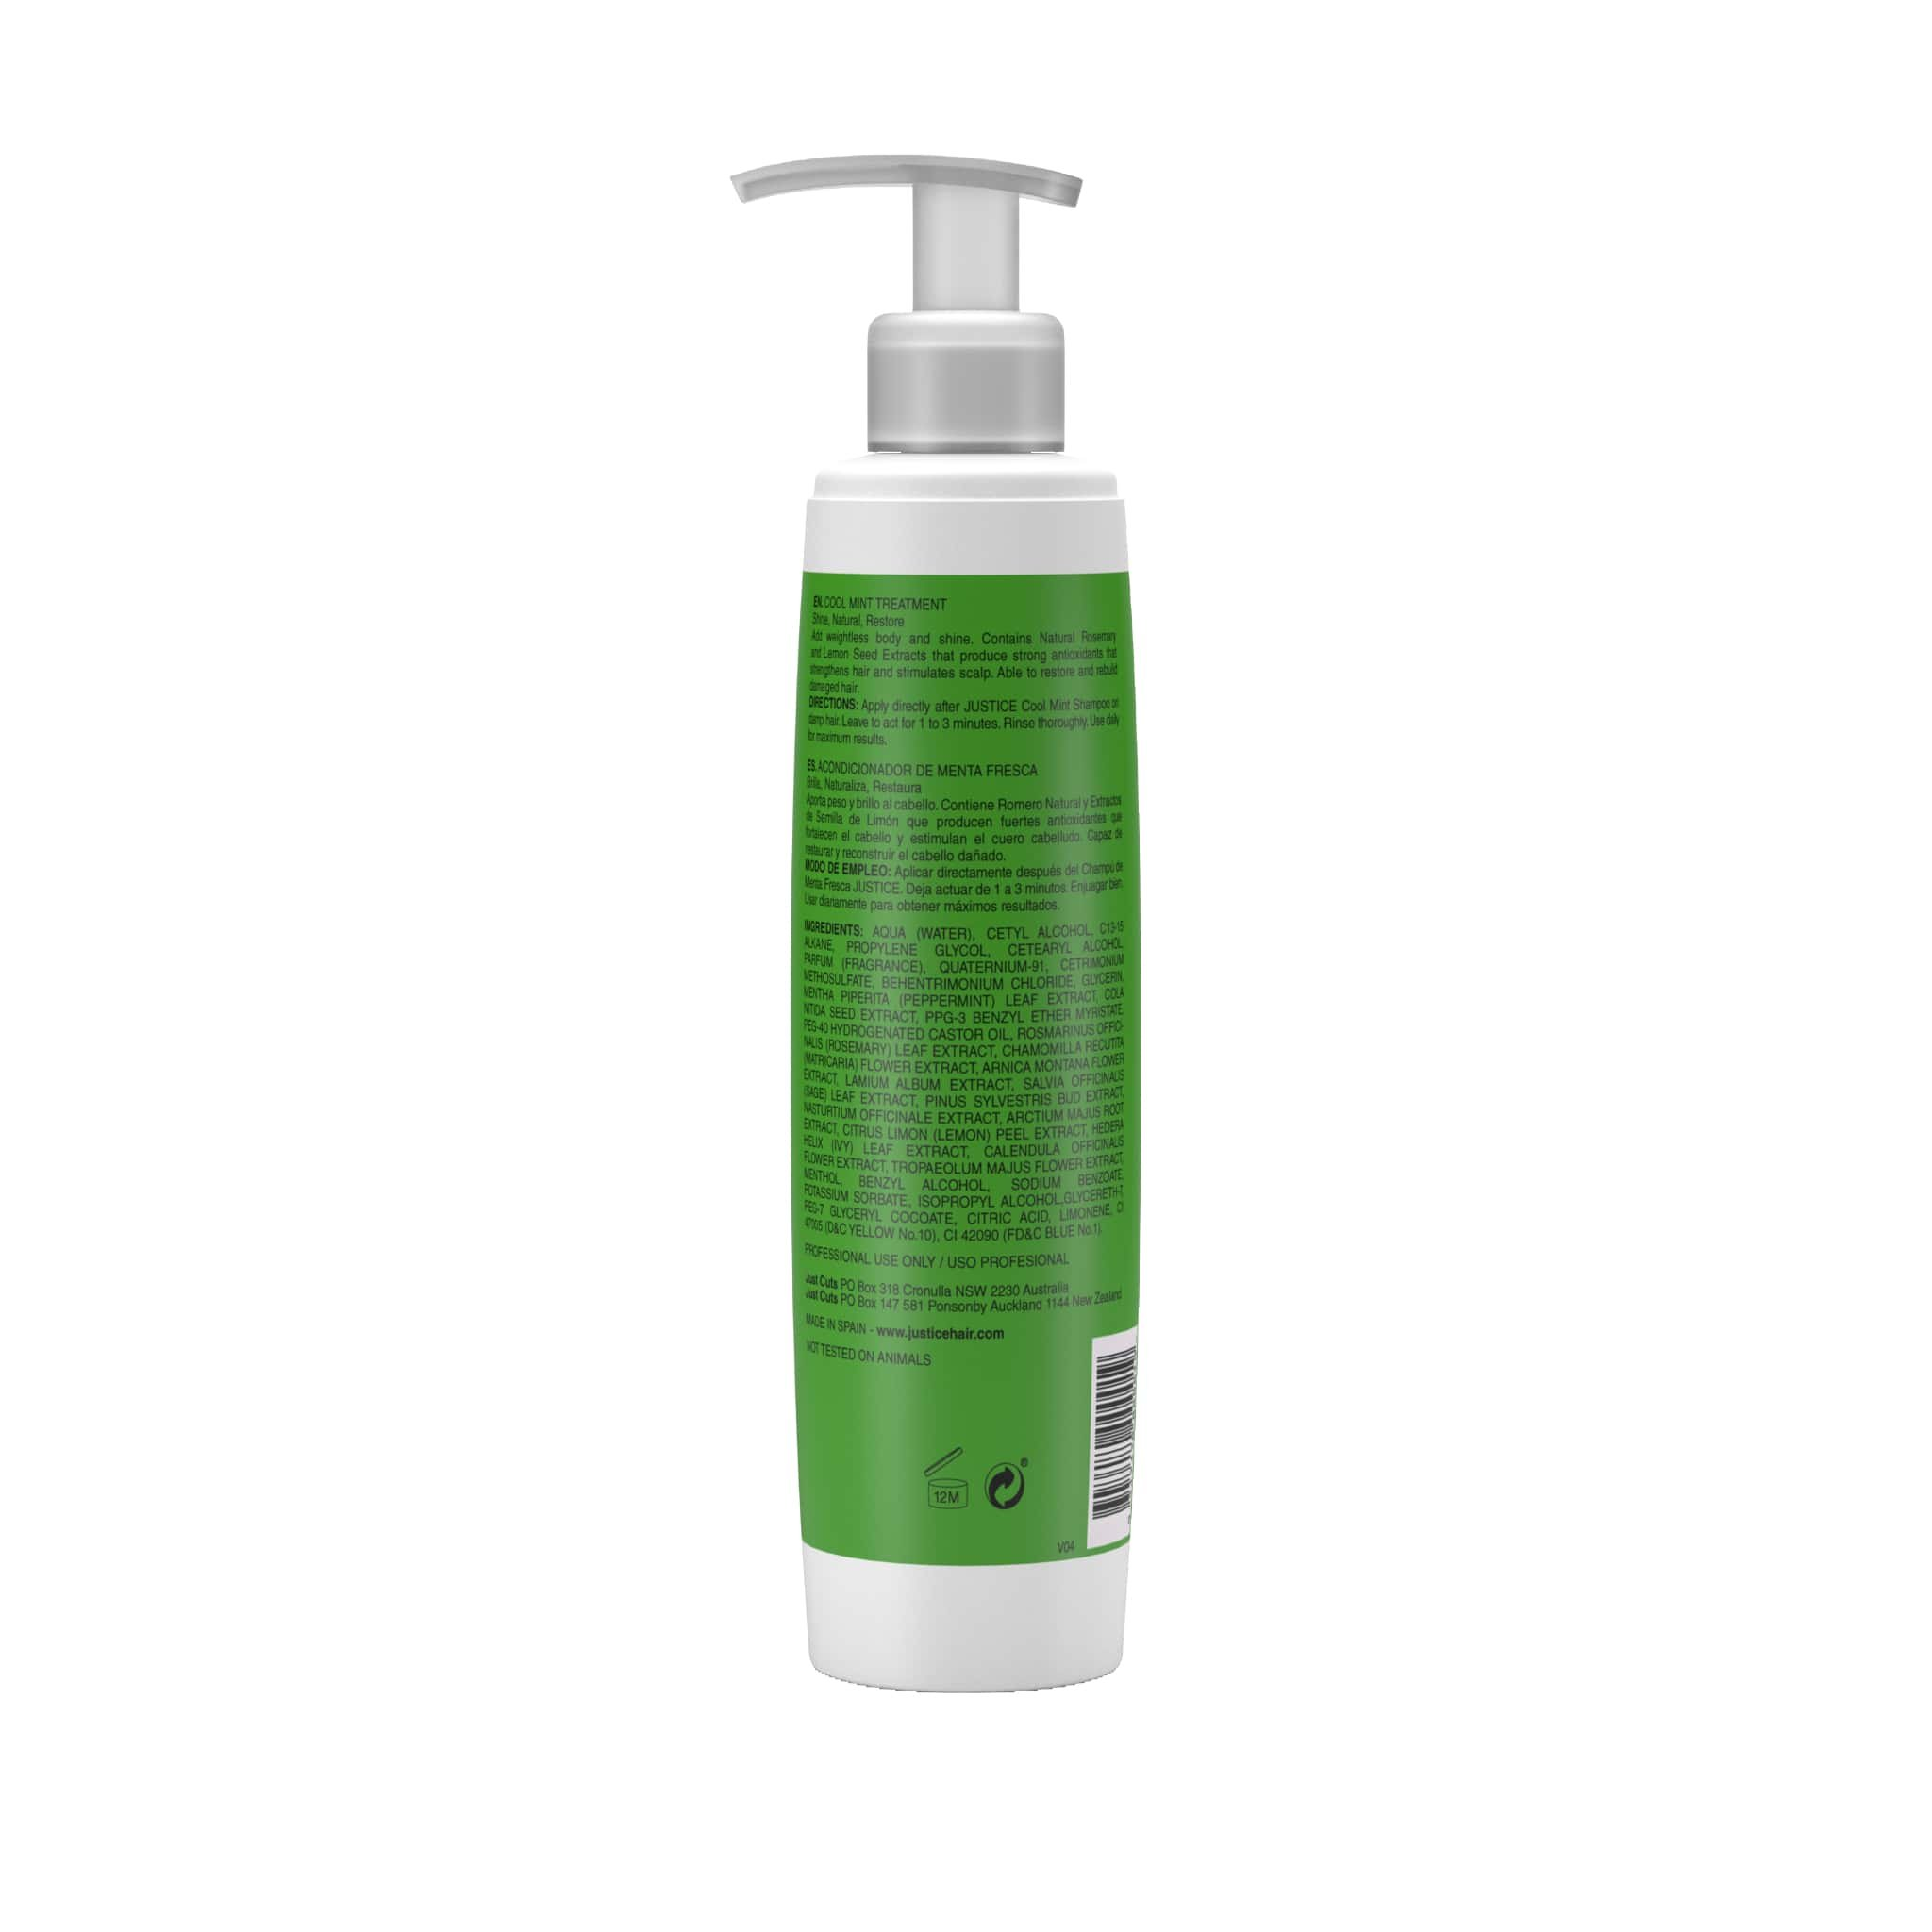 Cool Mint Conditioner Rejuvenate & Moisturize Naturally   Deep Conditioning Treatment Repairs Damaged Hair   Sooth Scalp, Stimulate Growth, Add Shine, Body, Volume/JUSTICE Professional 250ml 8.5oz by Justice Professional Haircare (Image #2)